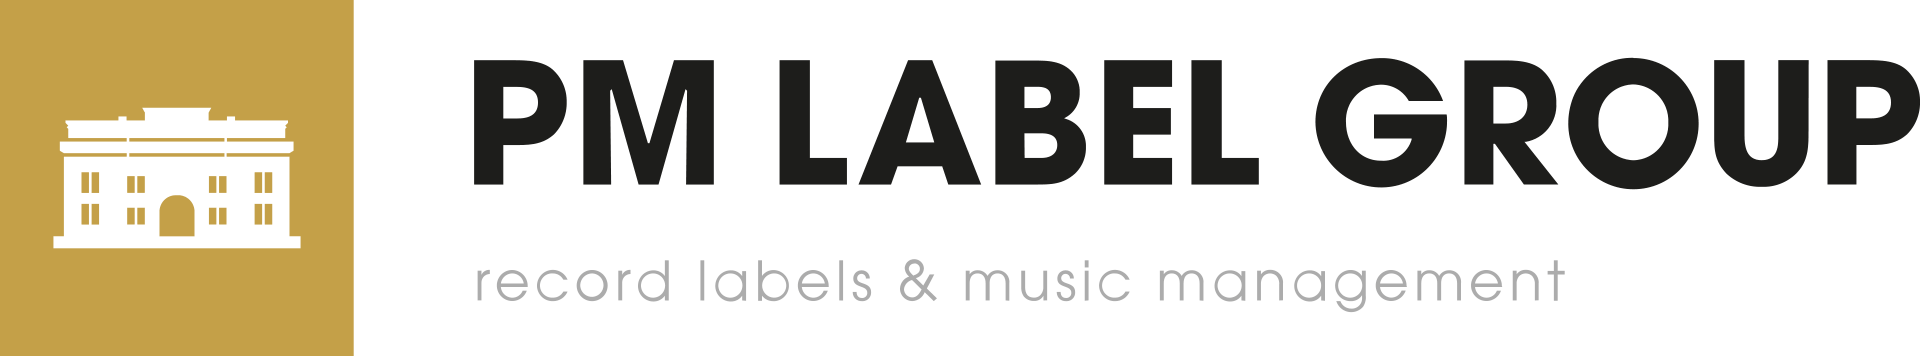 PM Label Group